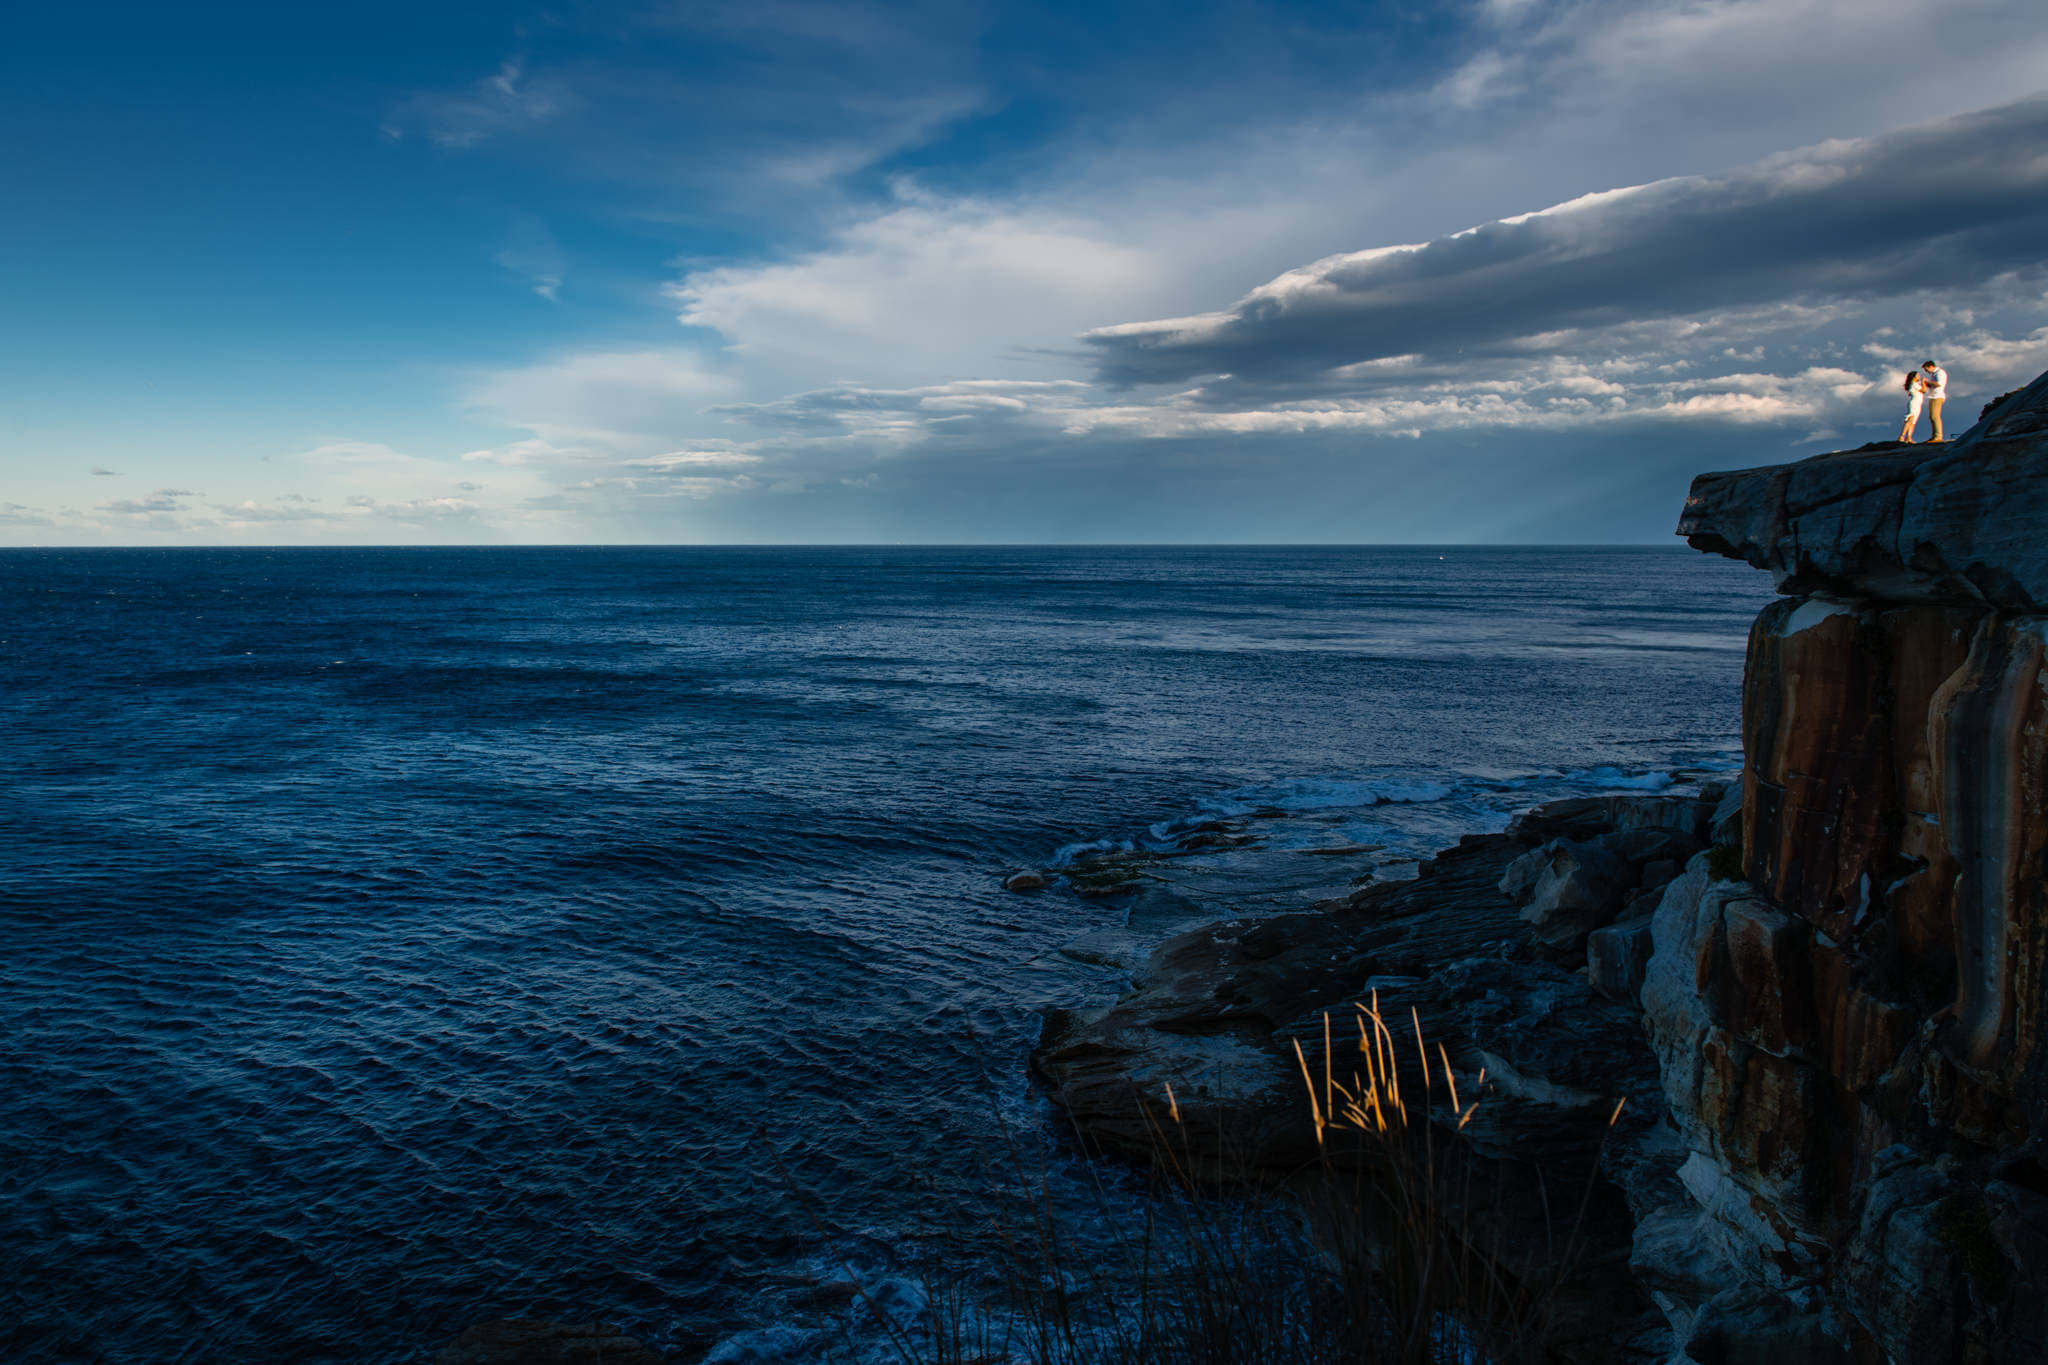 Panoramic view of the ocean from South head with couple dancing on a cliff top